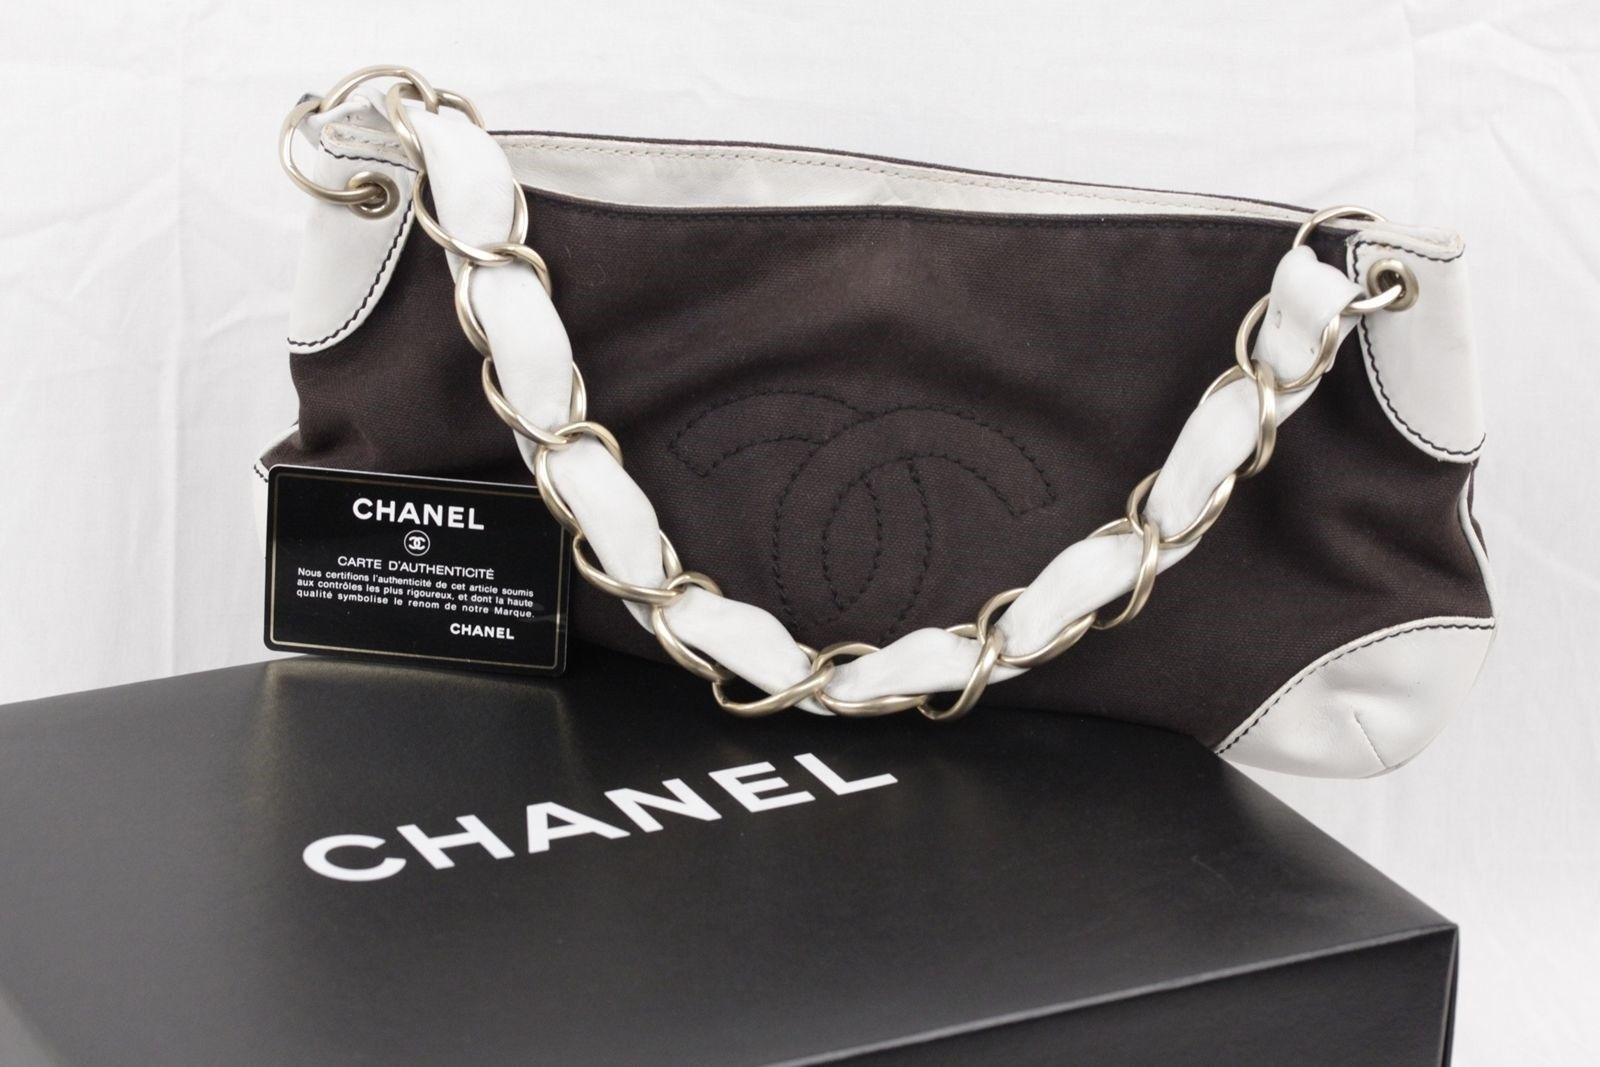 b16cd432676b Authentic CHANEL Brown Canvas & White Leather SHOULDER BAG Purse TOTE w/CC  LOGO